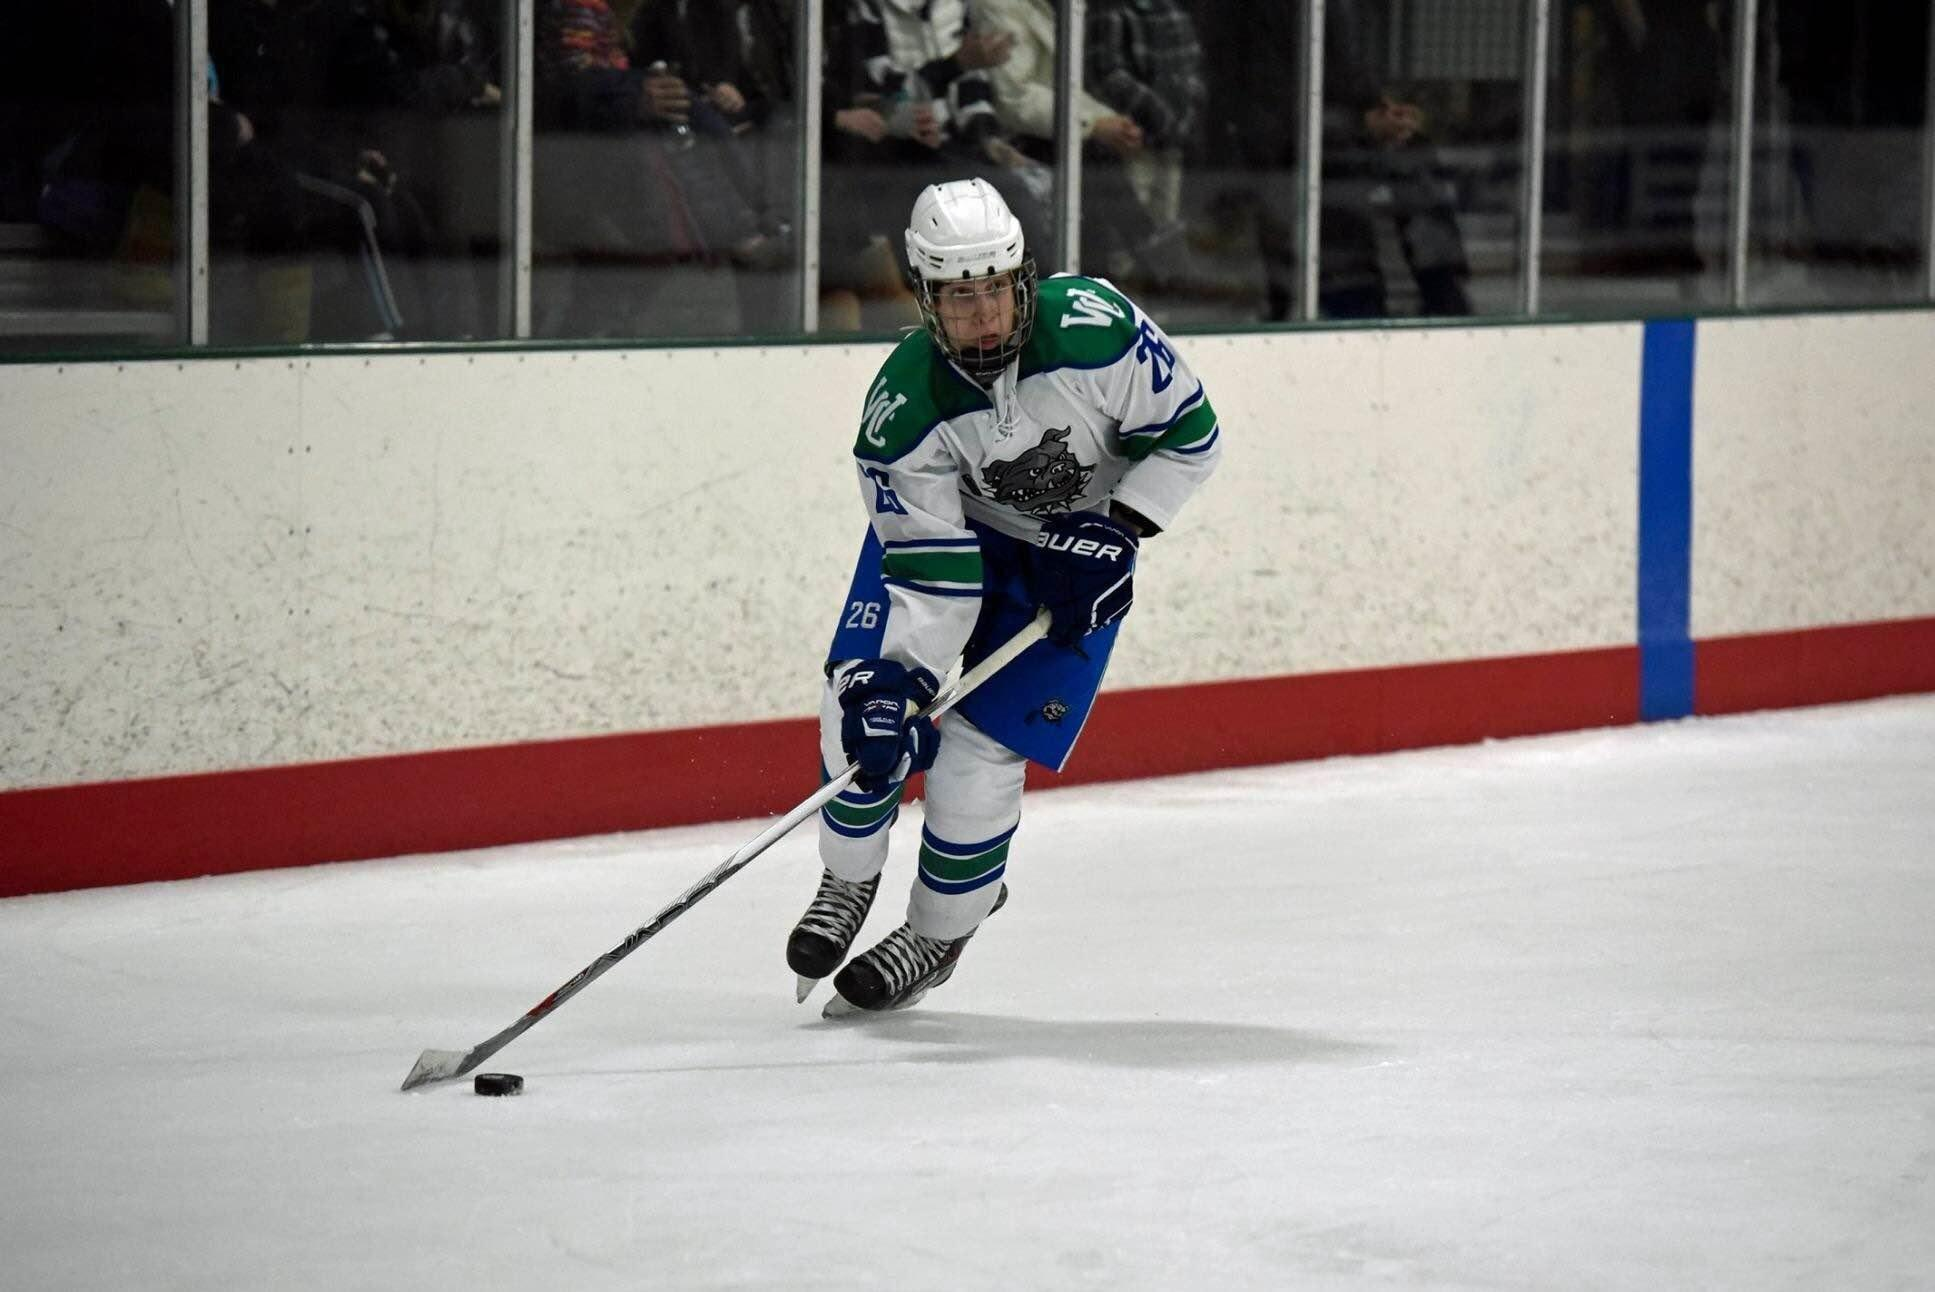 Senior Philip Satin, who has been skating since he was 3, has two state championship victories under his belt.